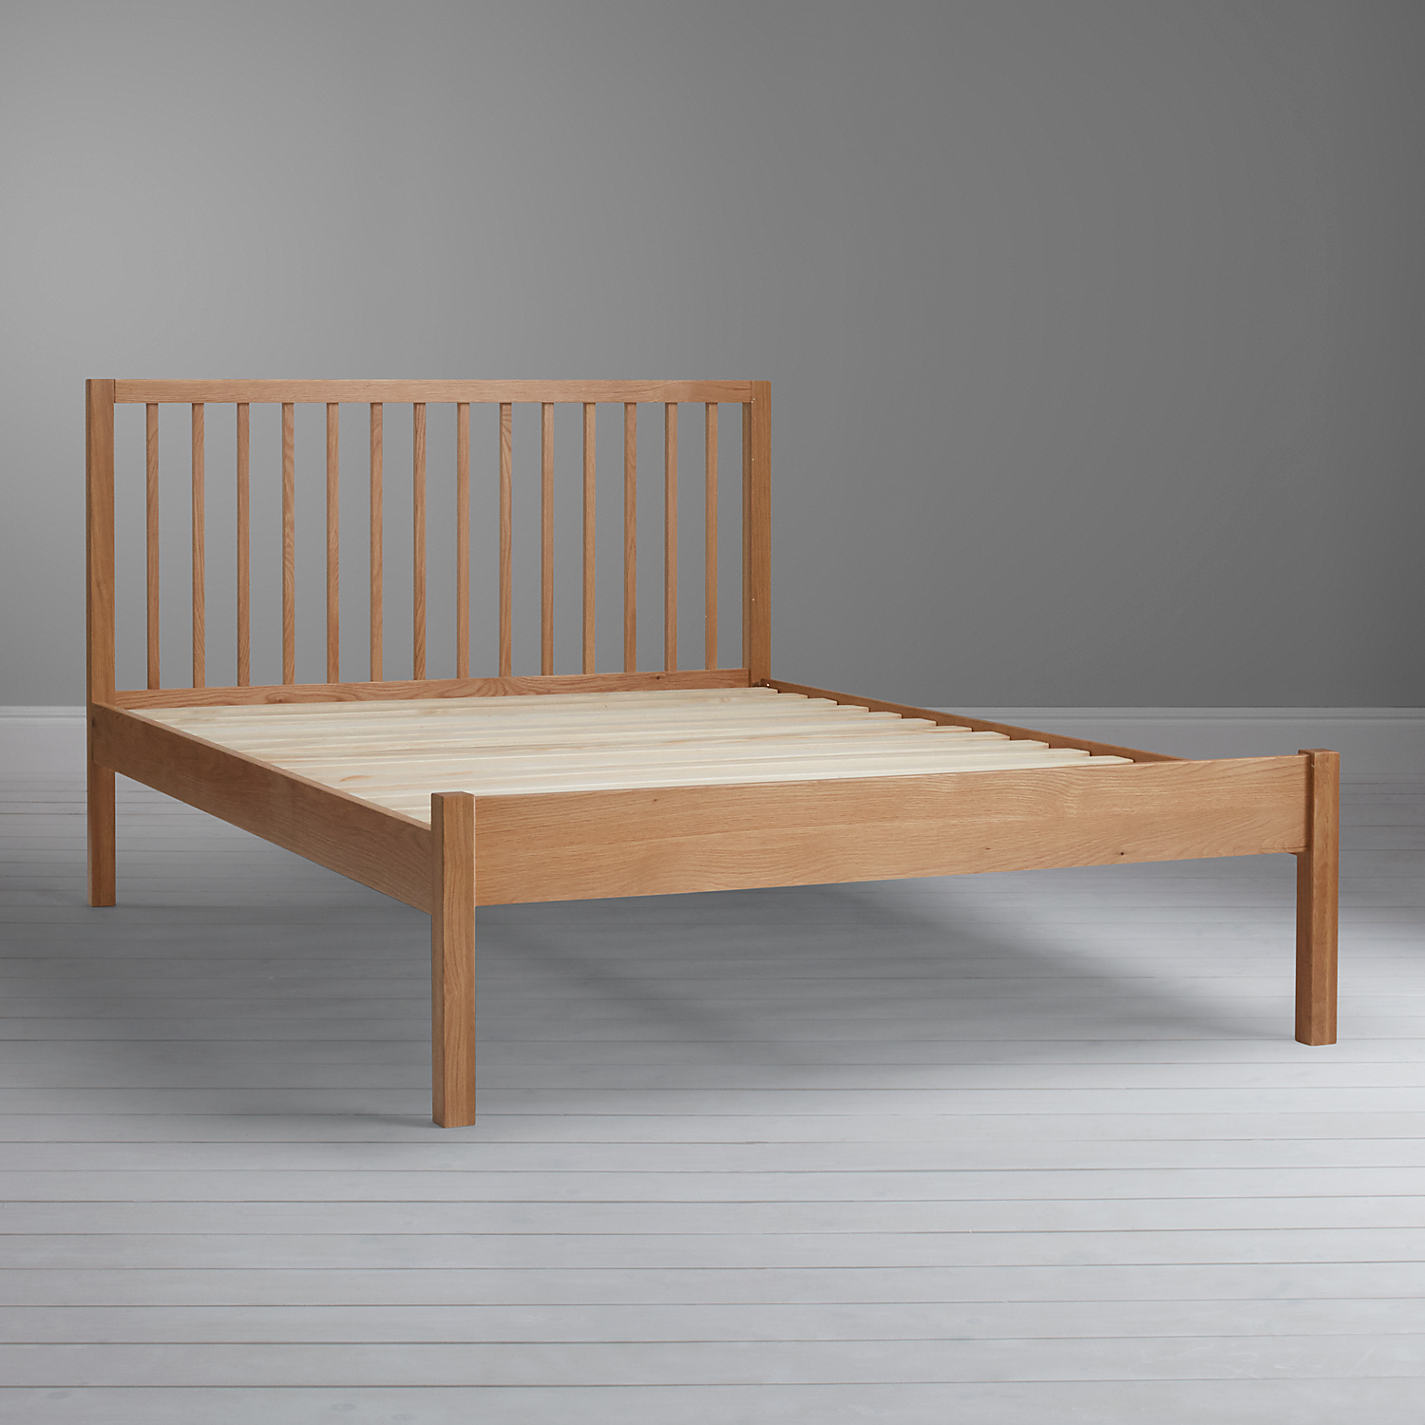 Bedroom Furniture John Lewis buy john lewis morgan bed frame, double, oak | john lewis